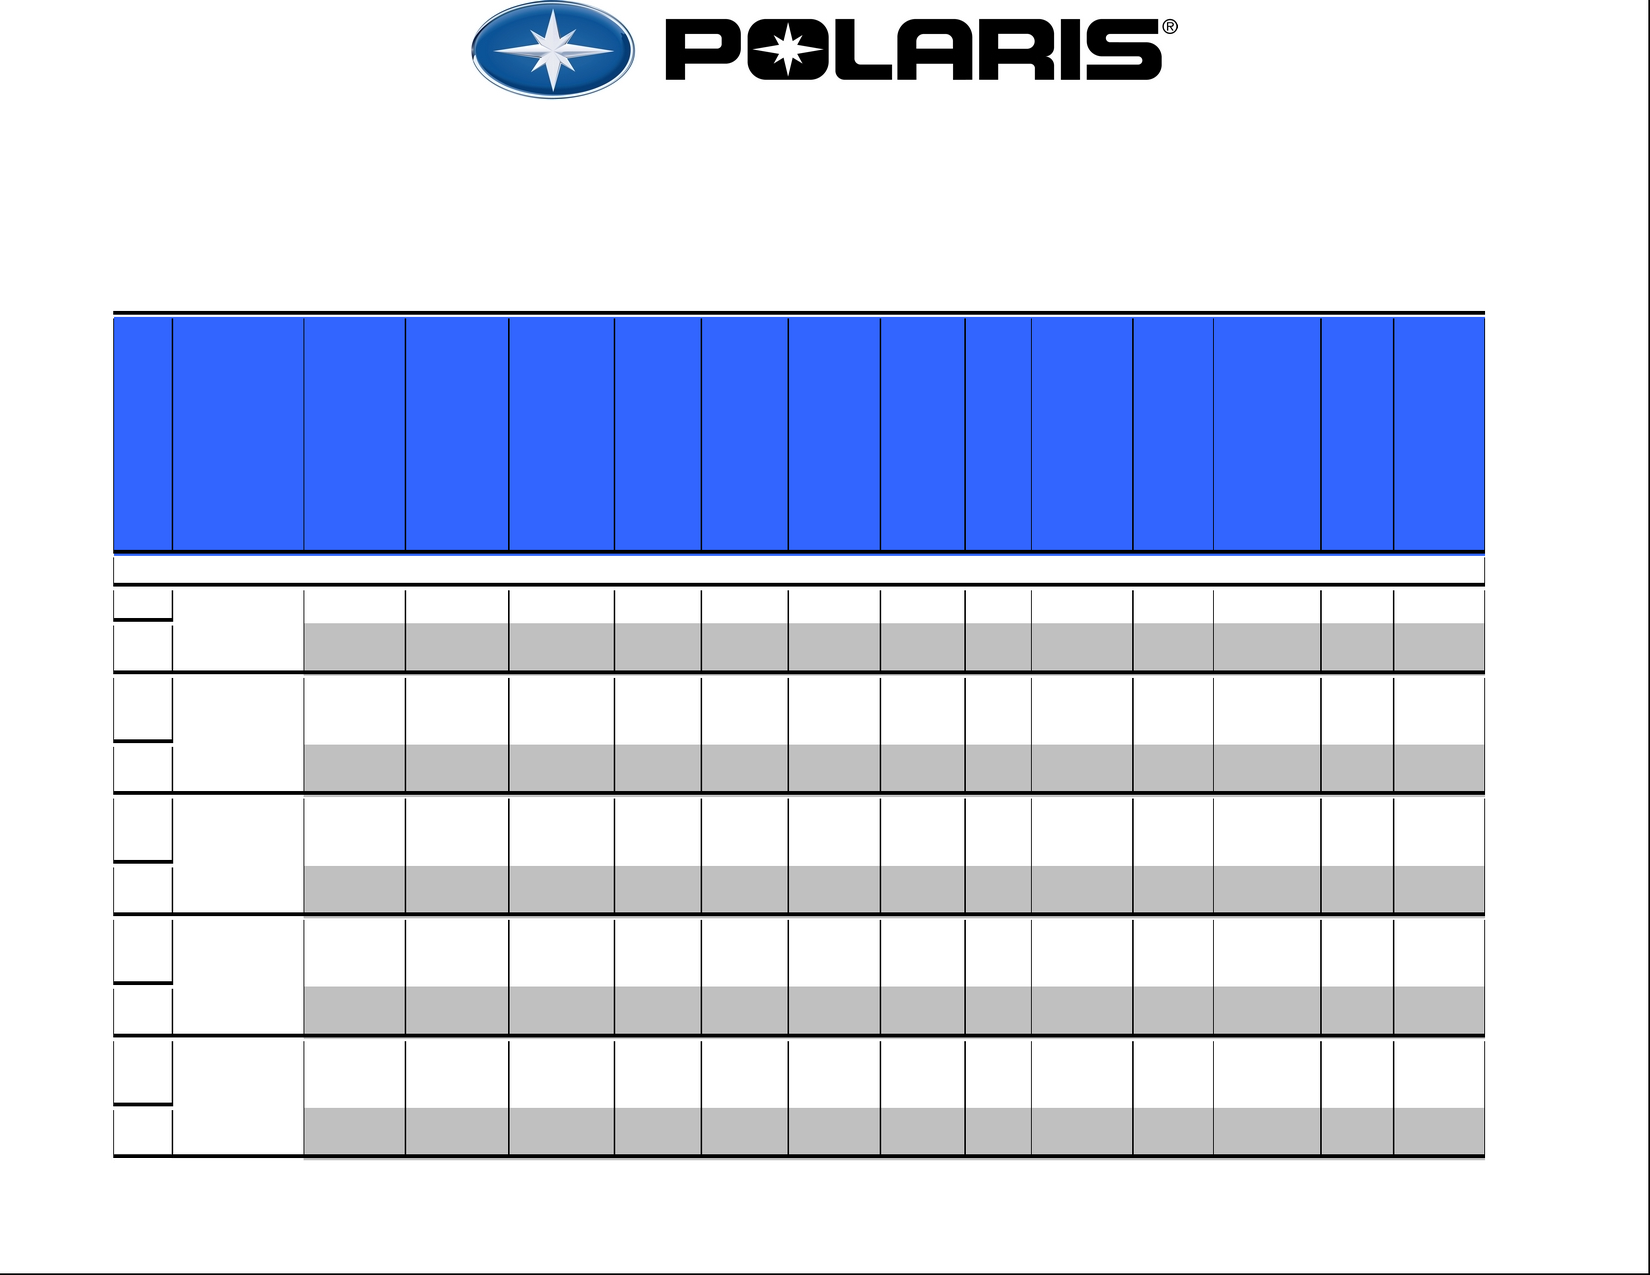 Polaris ATV / Ranger UTV Lubricant Guide